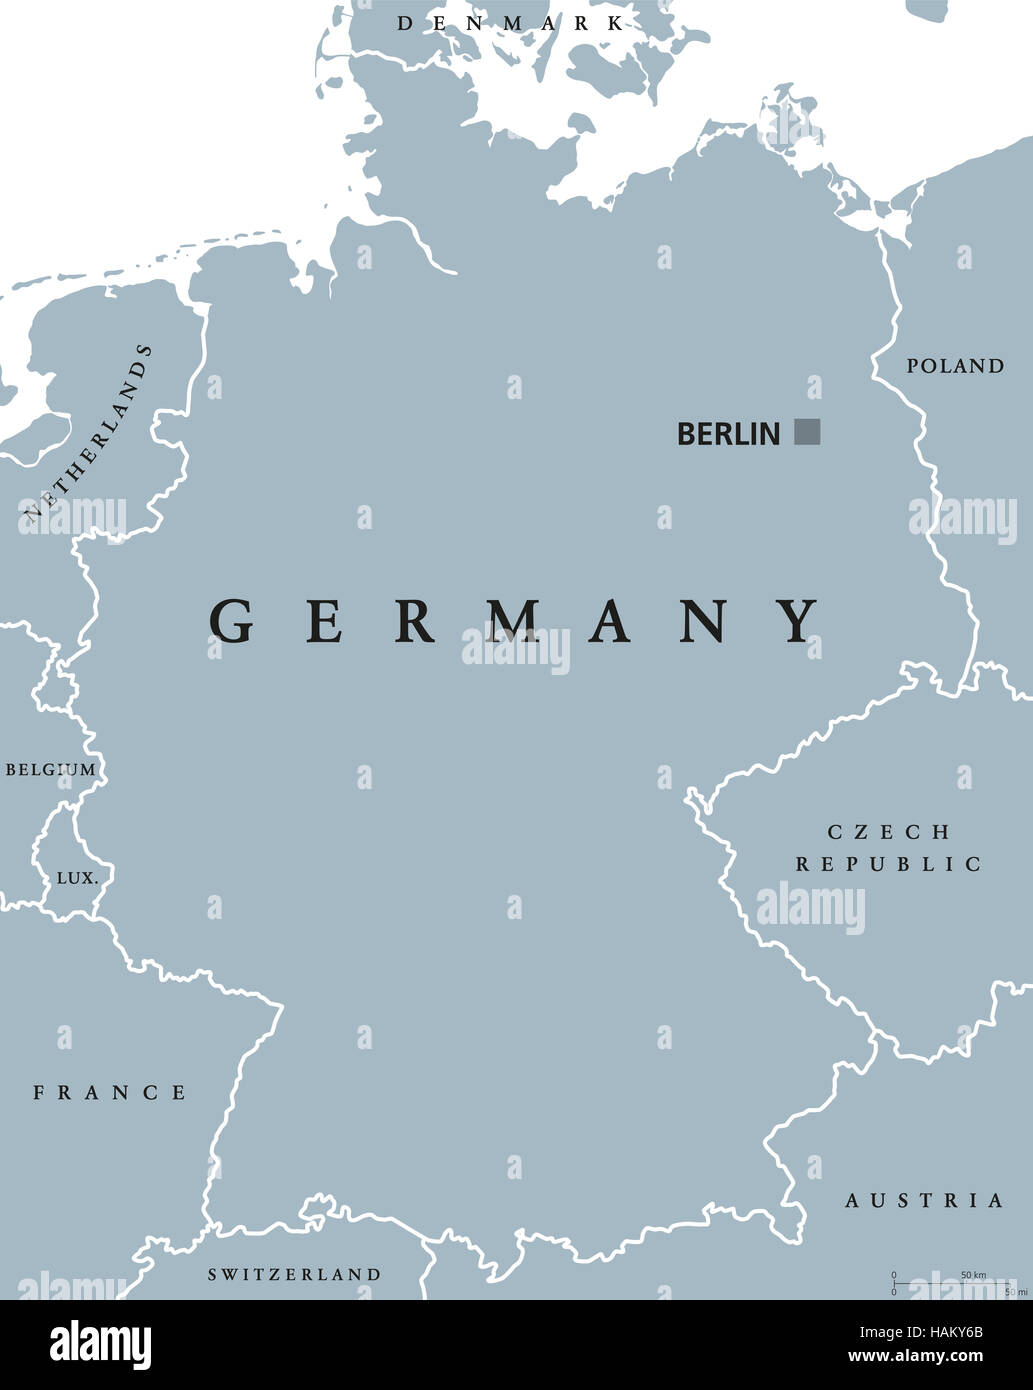 Germany Political Map With Capital Berlin National Borders And - Germany map neighbouring countries